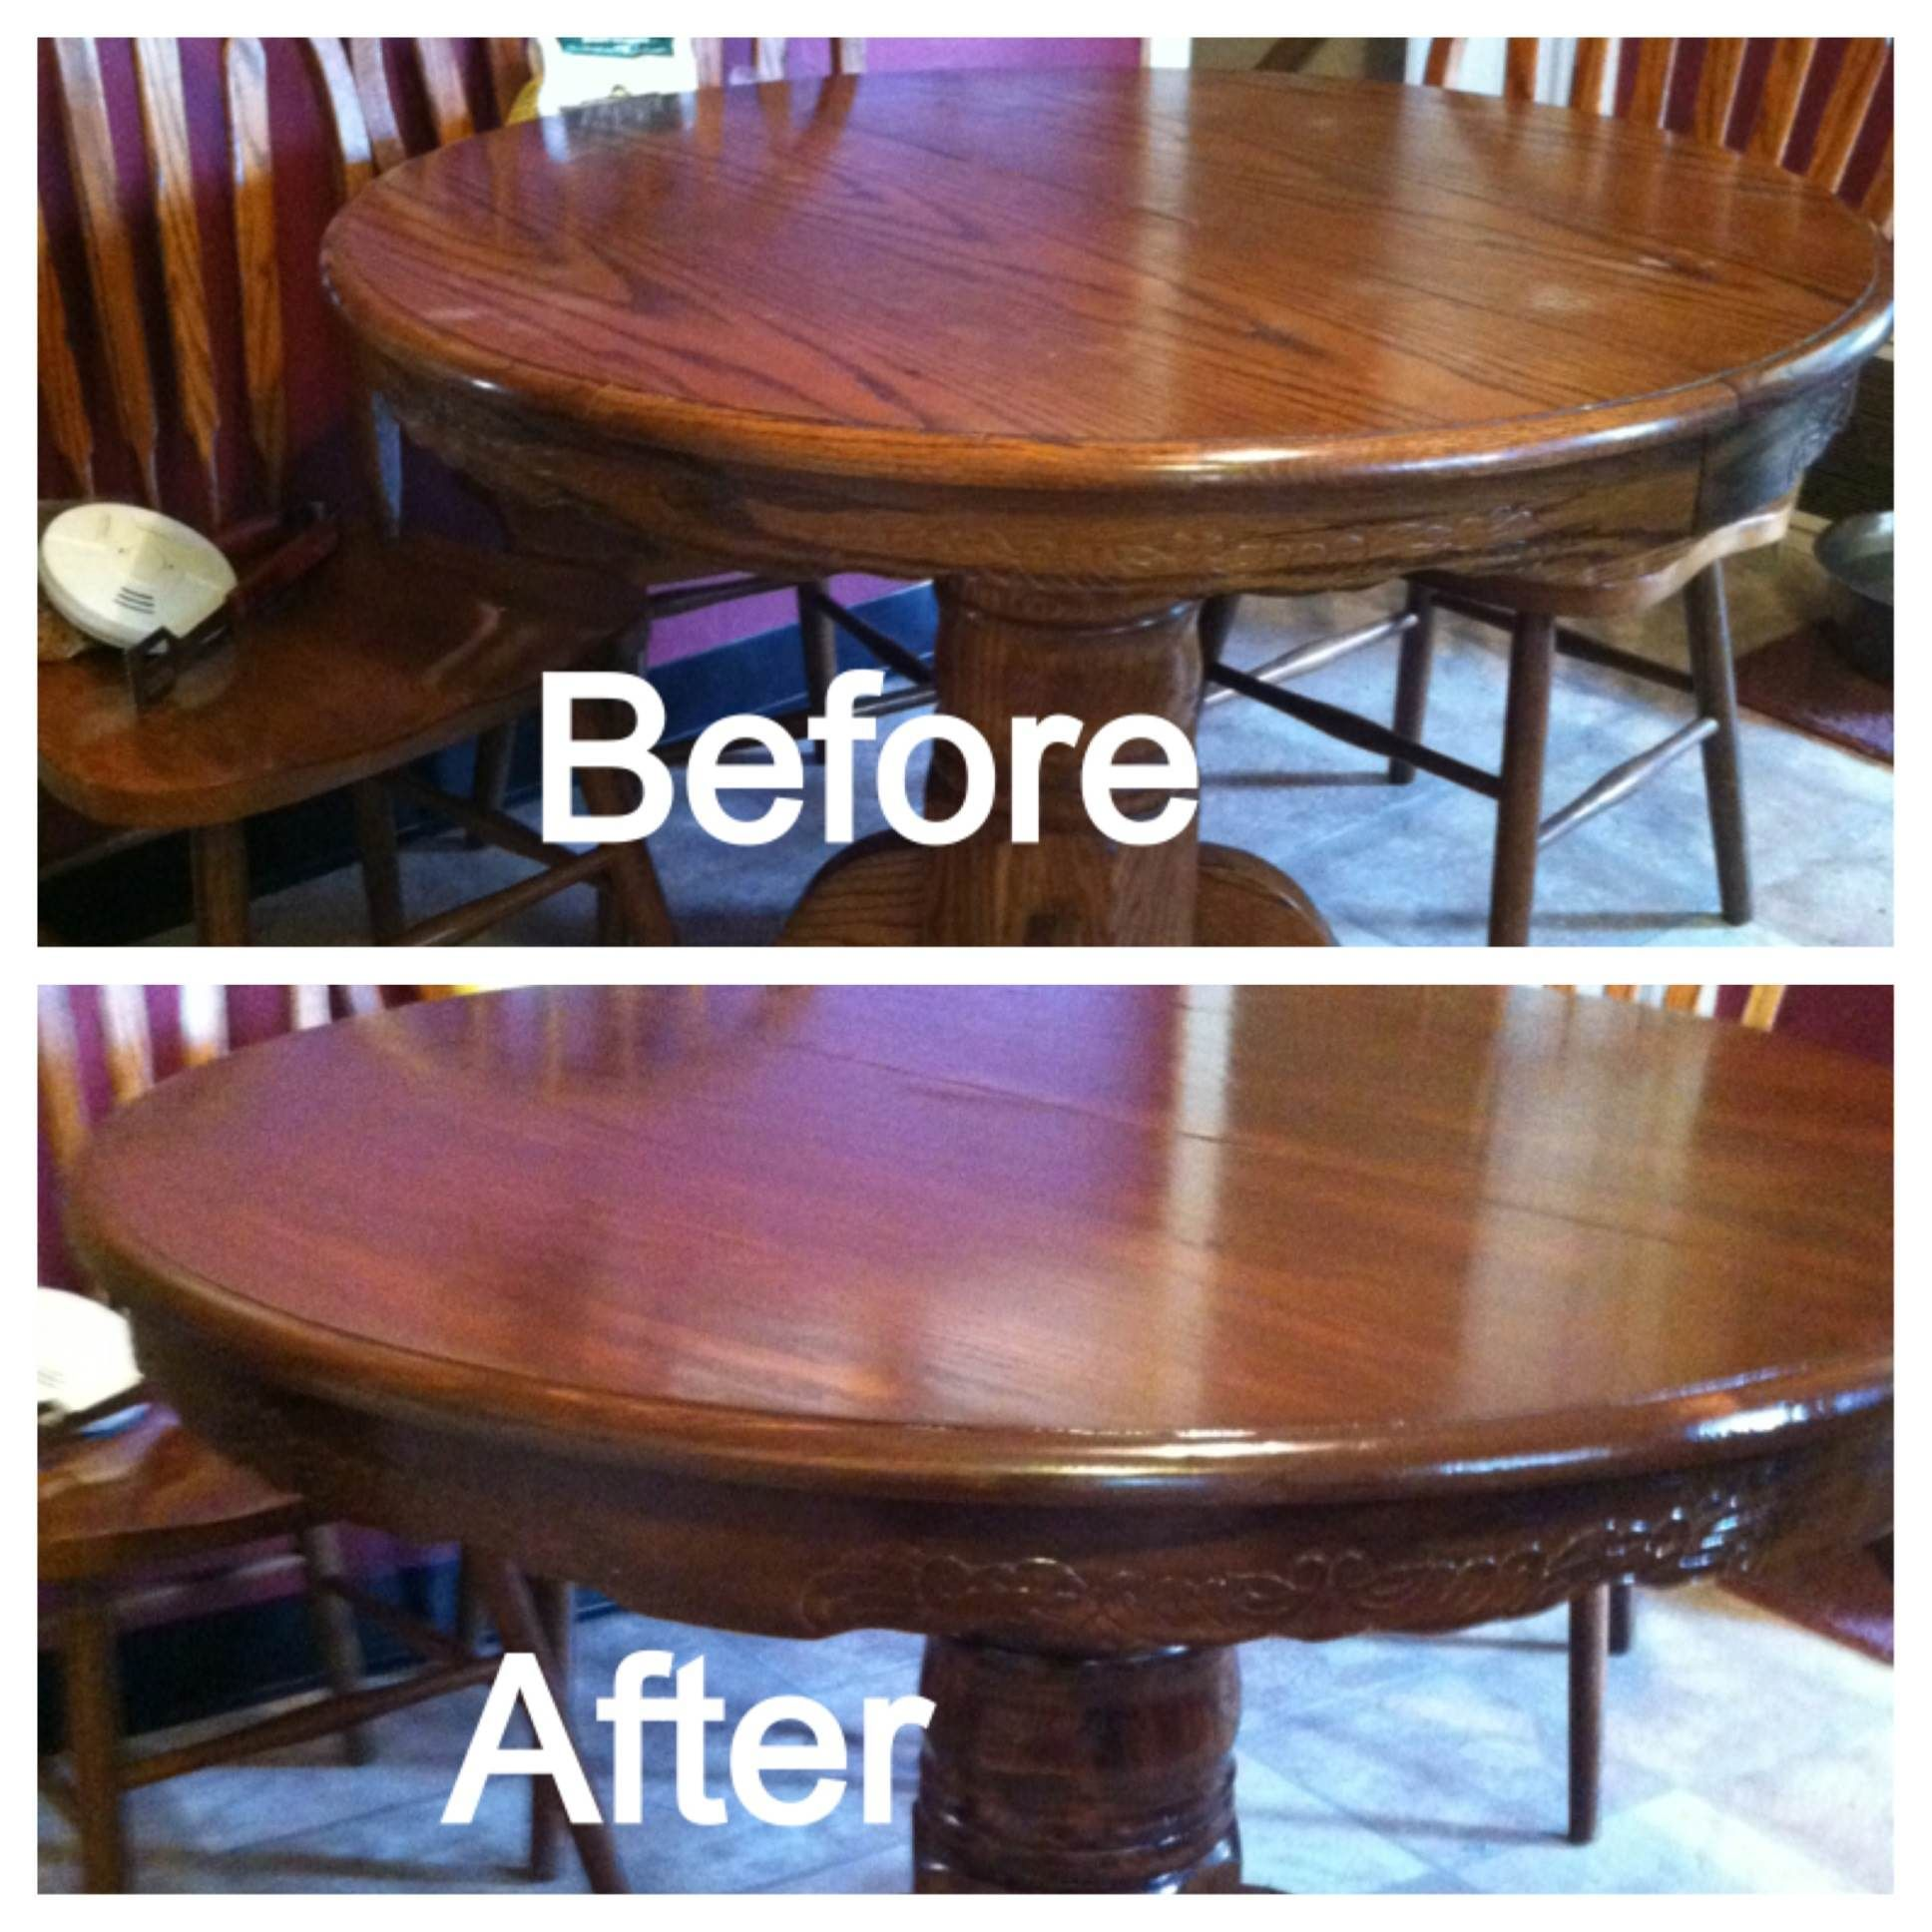 Restain Kitchen Table Diy restaining kitchen table and chairs diy projects pinterest diy restaining kitchen table and chairs workwithnaturefo